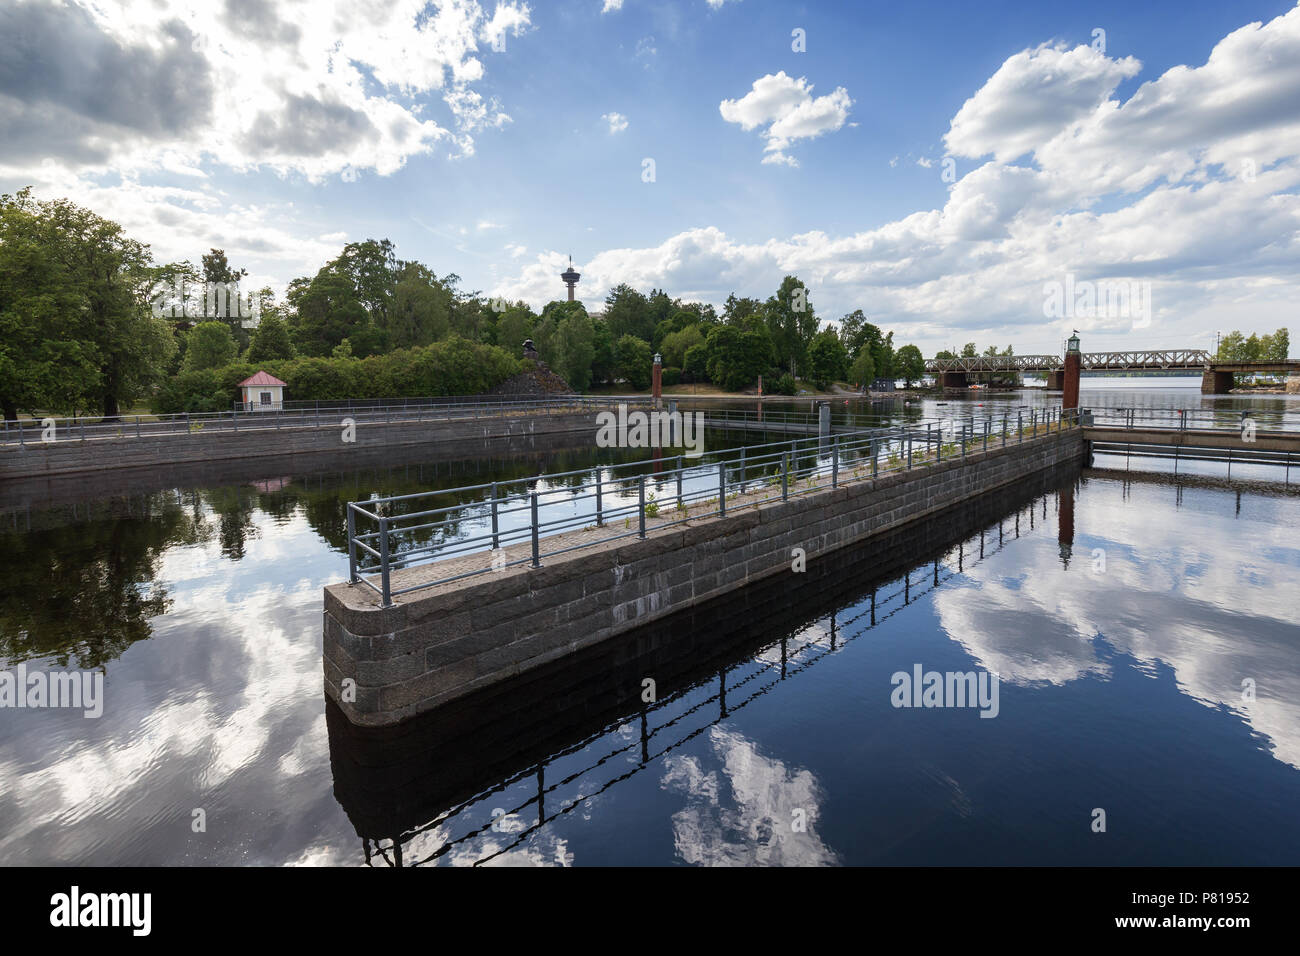 View of the Tammerkoski rapids, parks and Näsinneula observation tower in downtown Tampere, Finland in the summer. Stock Photo